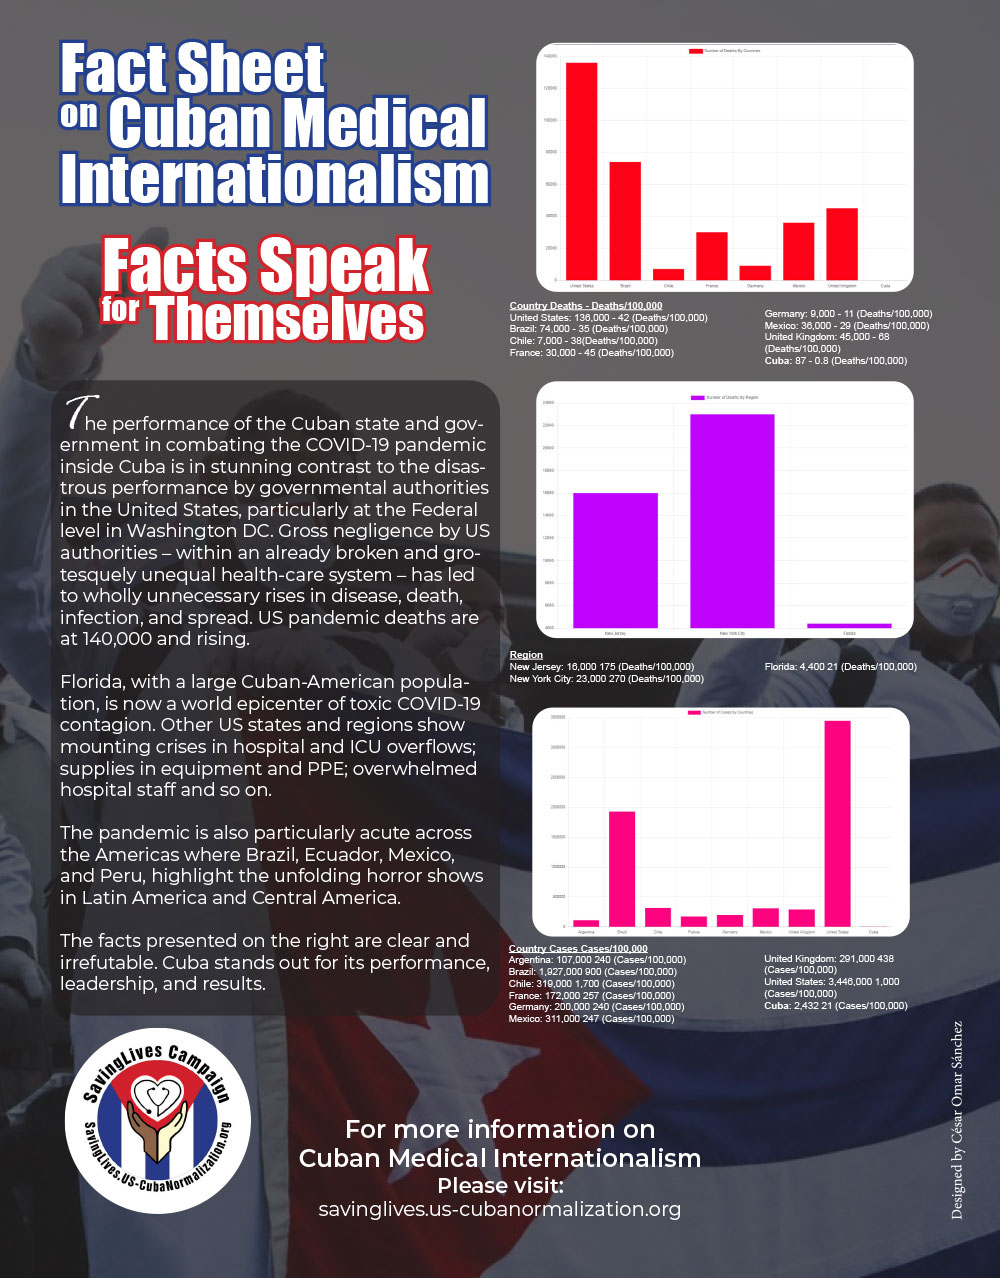 Fact Sheet on Cuban Medical Internationalism